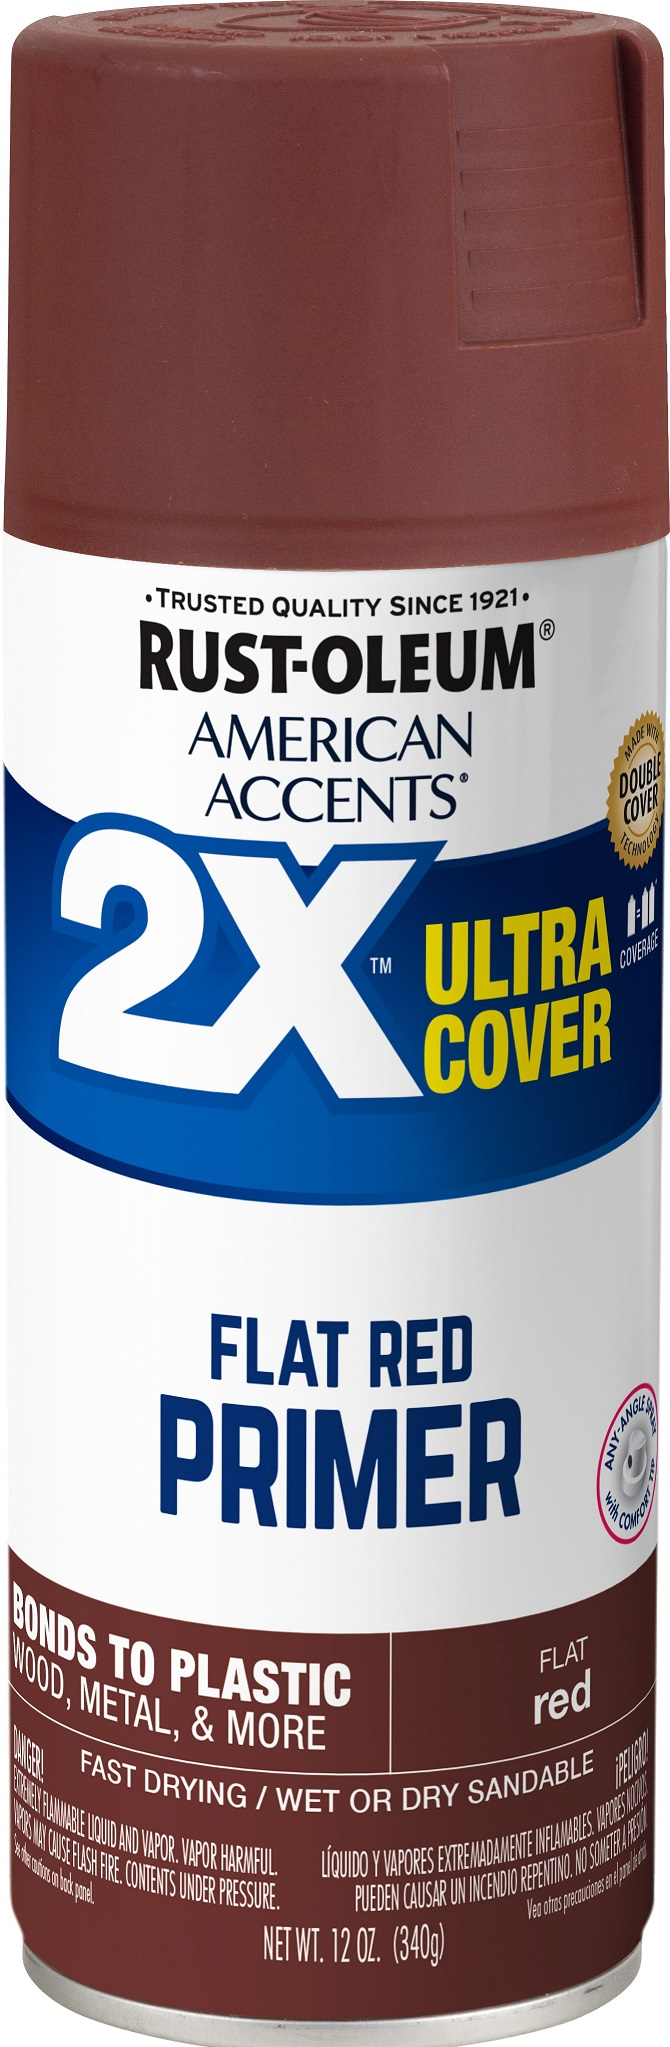 (3 Pack) Rust-Oleum American Accents Ultra Cover 2X Red Primer Spray Paint, 12 oz